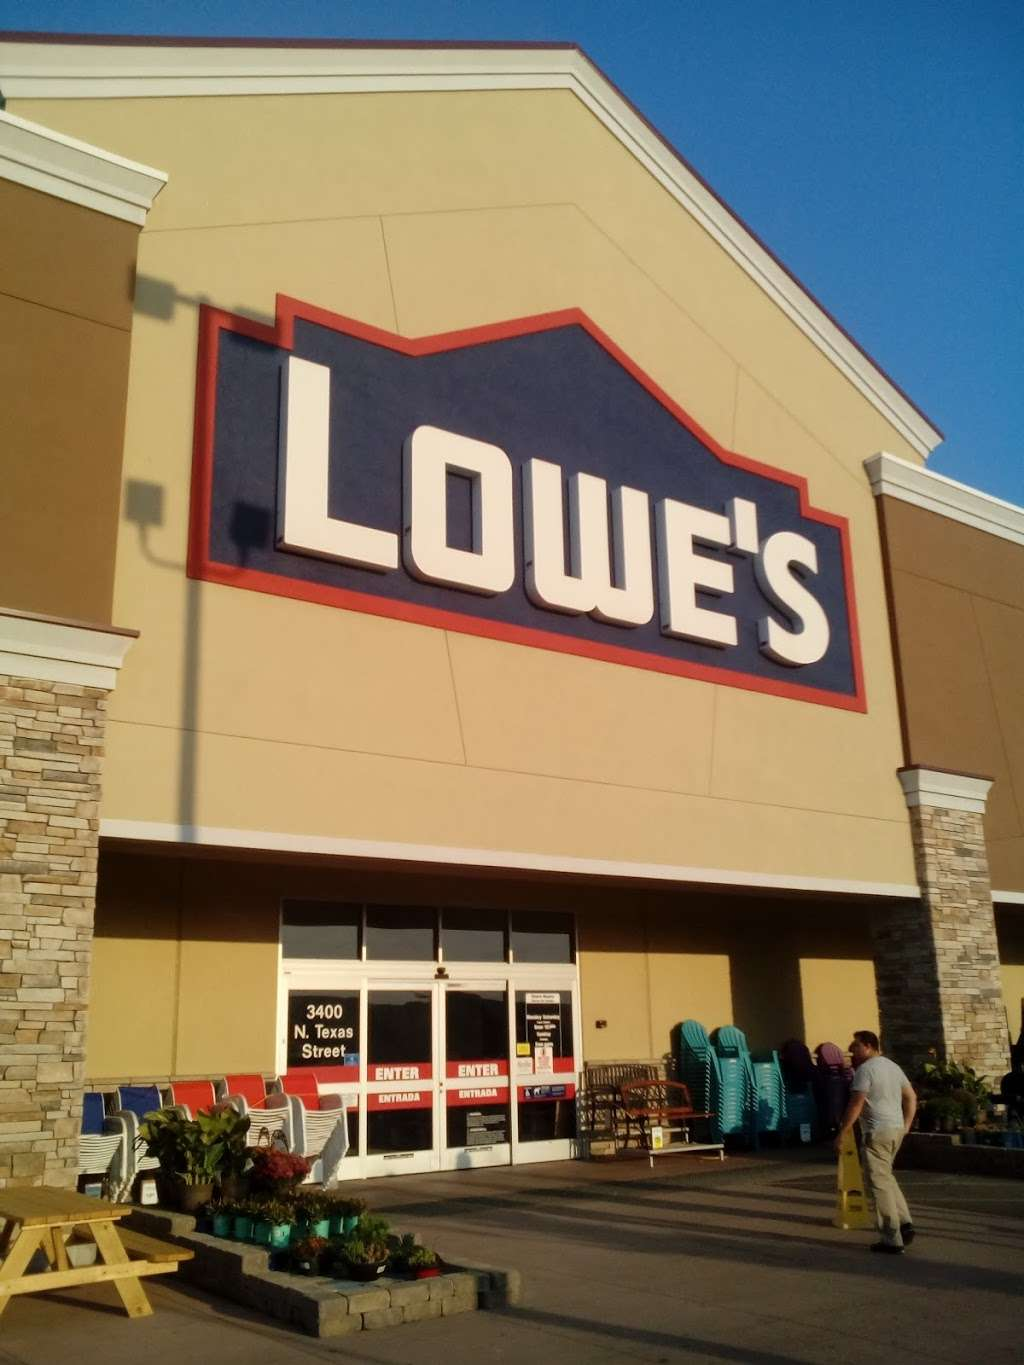 Lowes Home Improvement - hardware store  | Photo 6 of 10 | Address: 3400 N Texas St, Fairfield, CA 94533, USA | Phone: (707) 207-2070